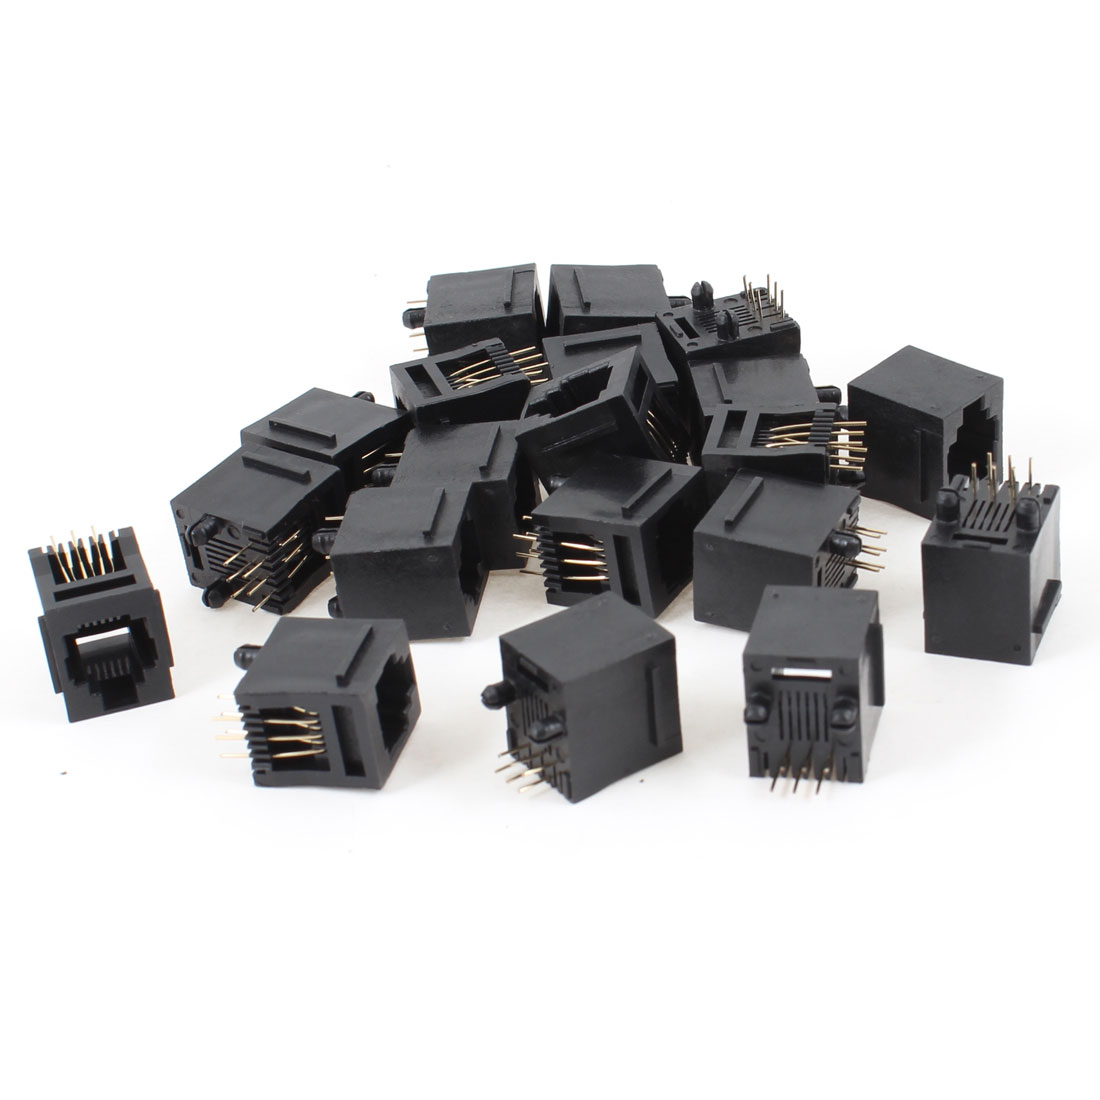 20 Pcs Black Plastic 180 Degree RJ12 6P6C Network Modular PCB Connector Jacks